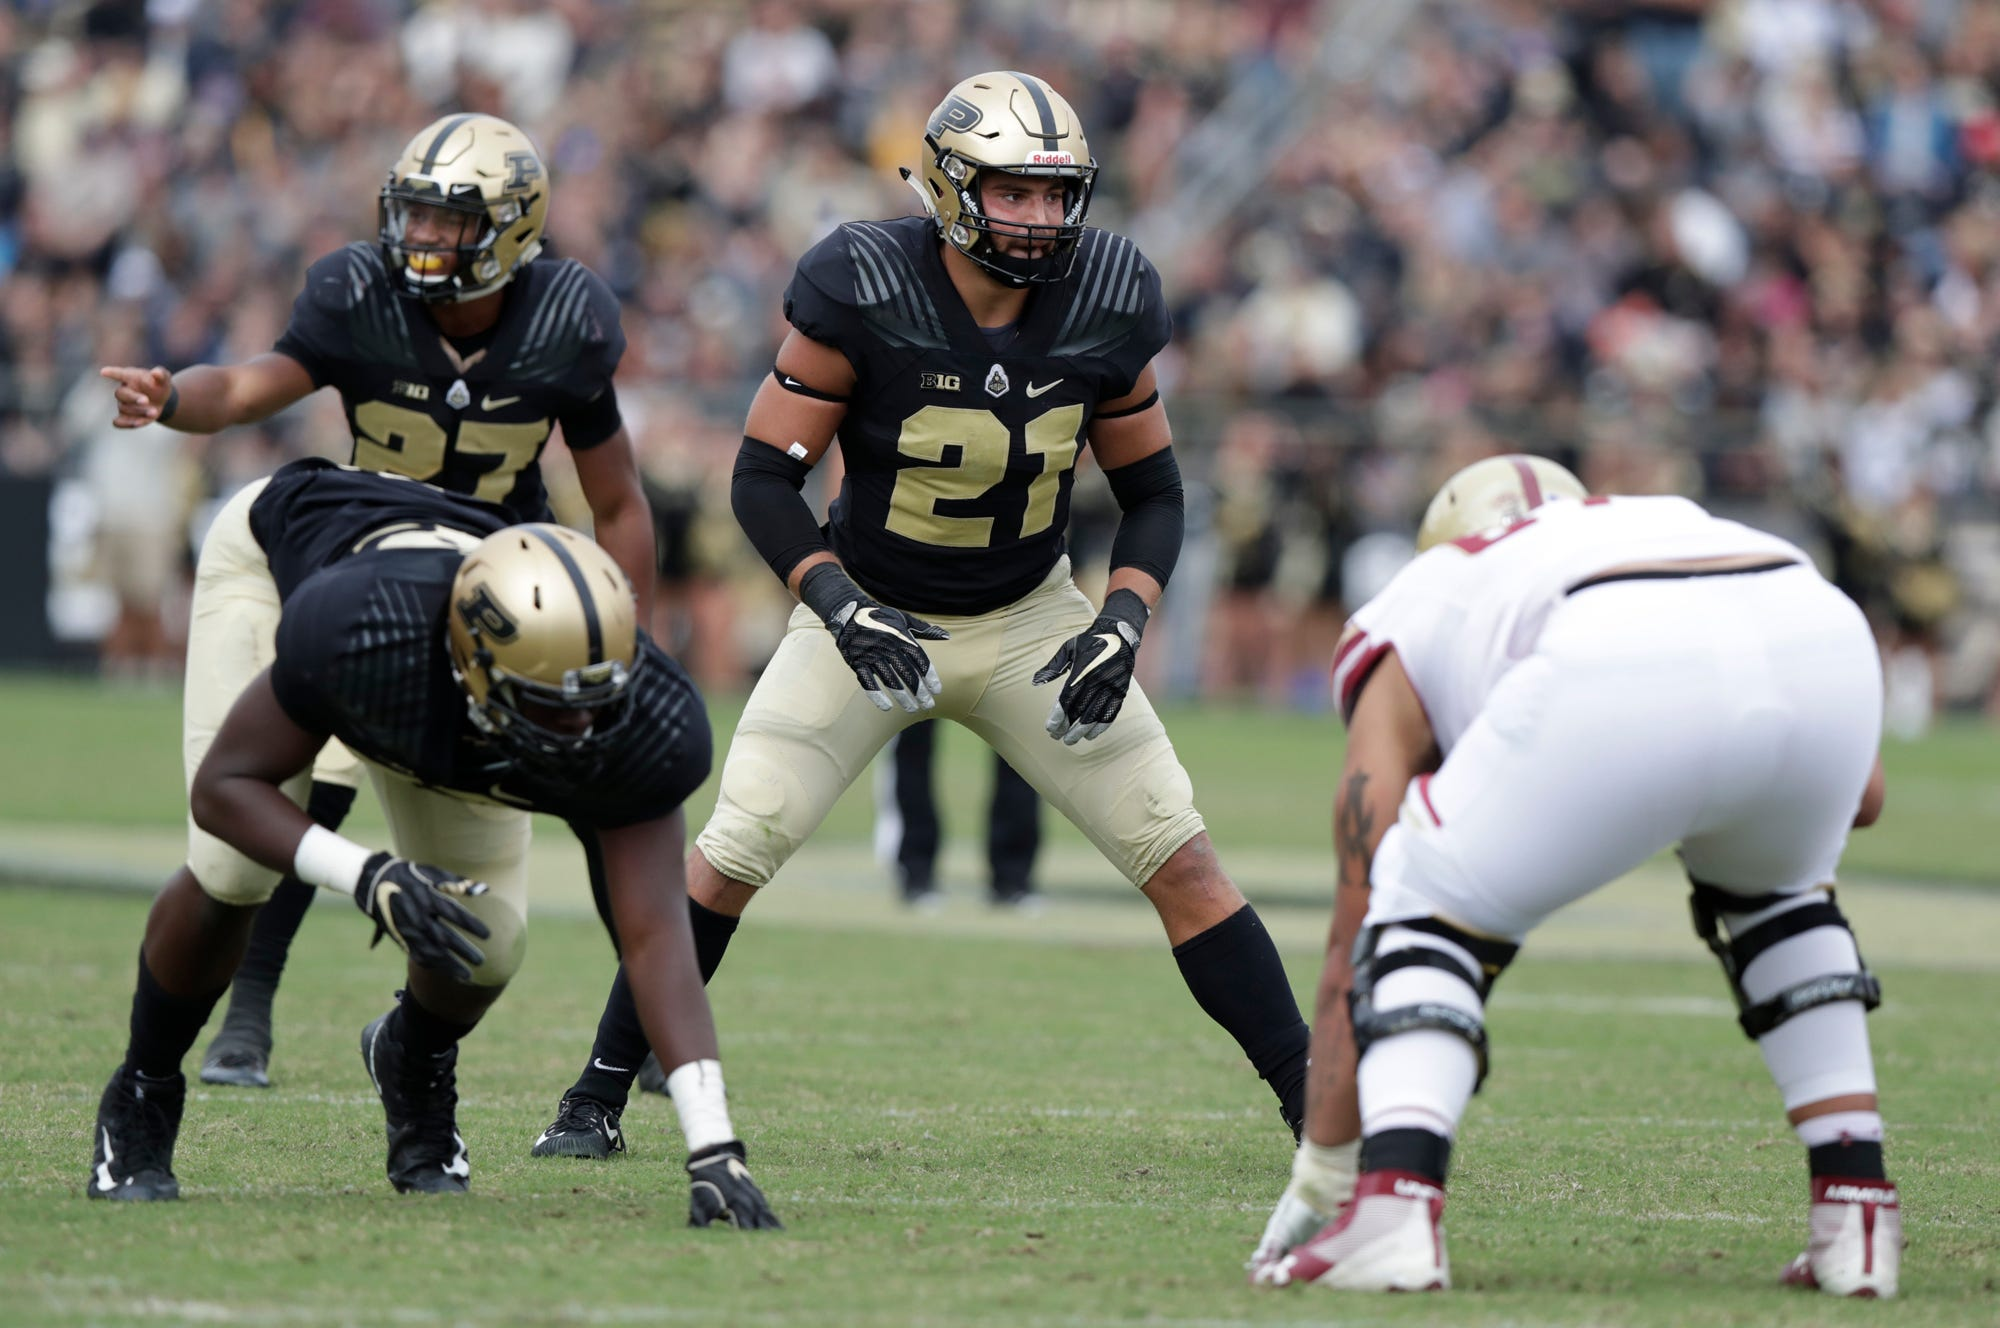 Purdue linebacker Markus Bailey (21) lines up against Boston College during the second half of an NCAA college football game in West Lafayette, Ind., Saturday, Sept. 22, 2018. Purdue defeated Boston College 30-13. (AP Photo/Michael Conroy)